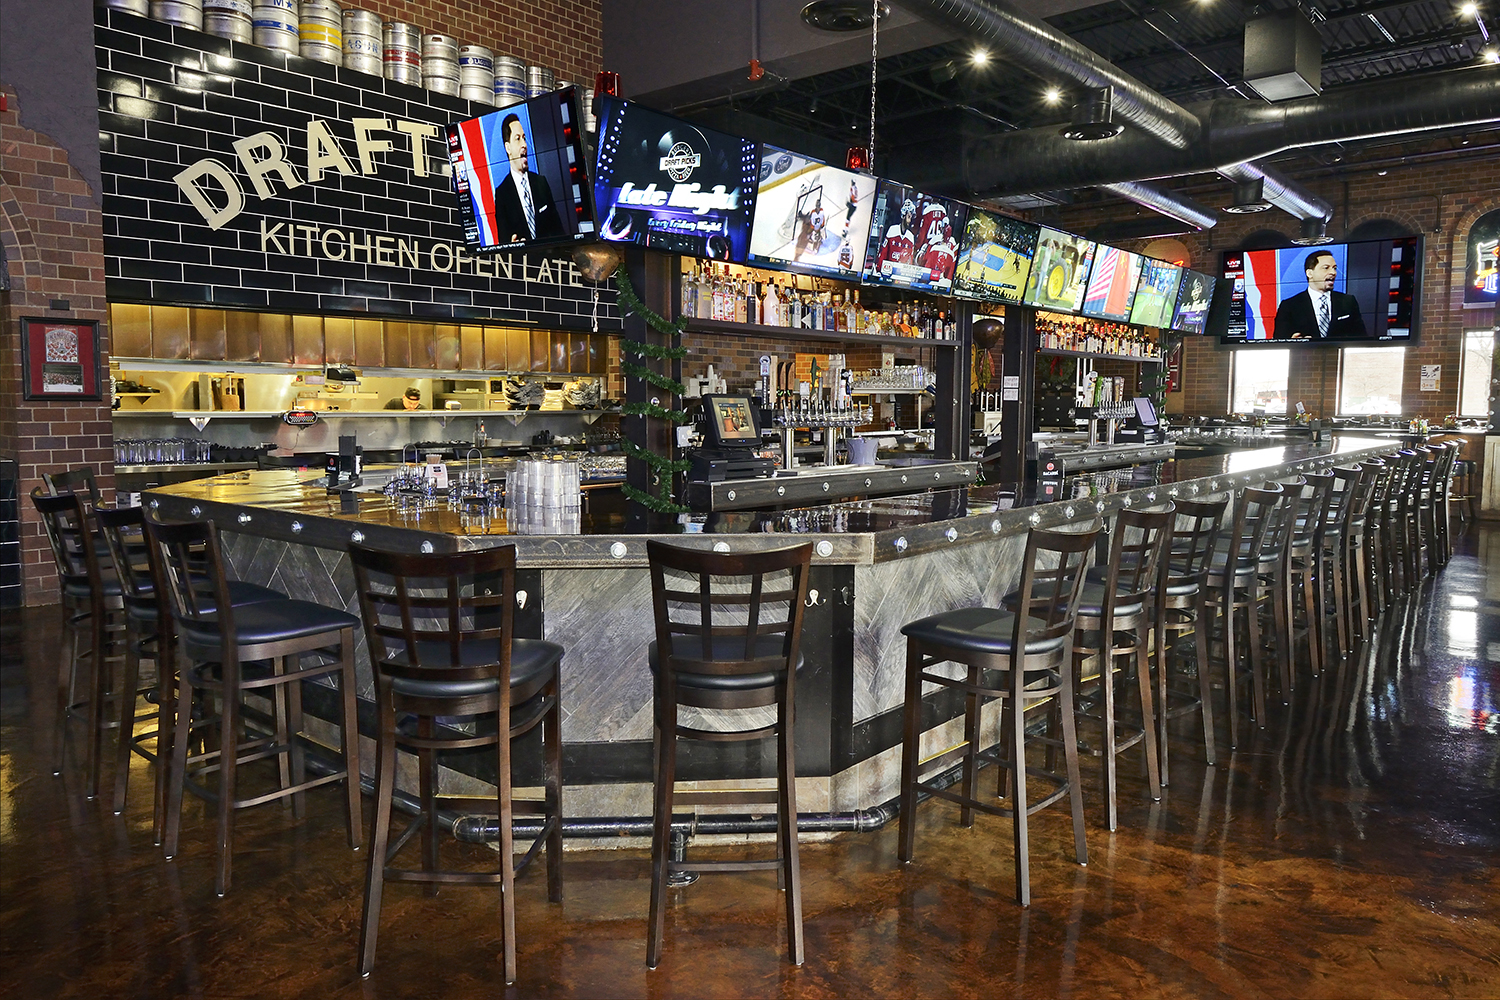 Long bar at Sports Bar with rows of televisions above bar Architectural Photography